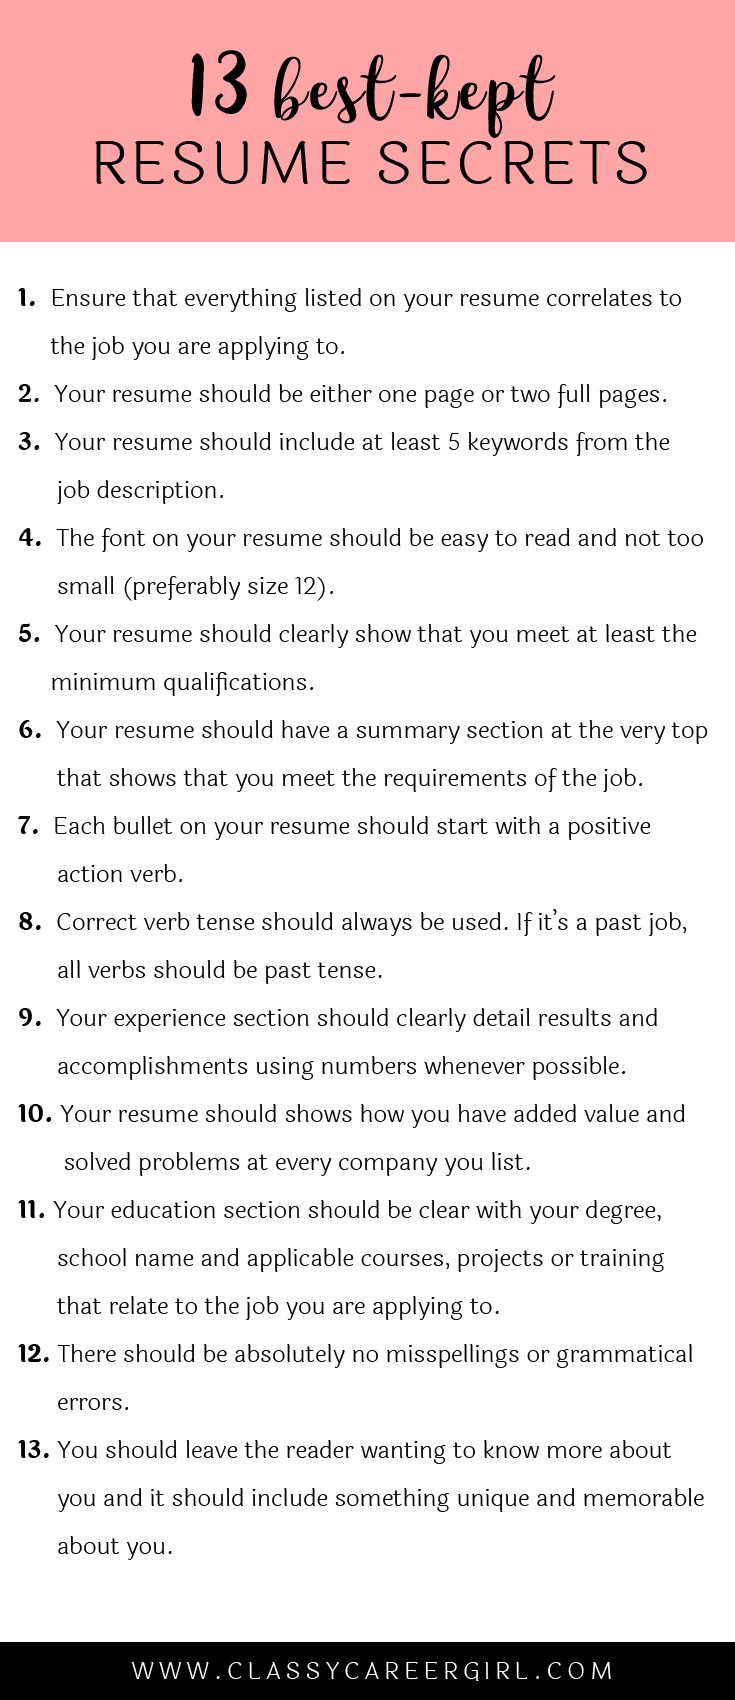 Picnictoimpeachus  Prepossessing  Ideas About Resume On Pinterest  Cv Format Resume Cv And  With Fascinating Some Hiring Managers Will Toss Your Resume Out If You Dont Know These  With Adorable Top Resume Fonts Also Cell Phone Sales Resume In Addition Does Microsoft Word Have A Resume Template And A Resume For A Job As Well As How To Write A Good Resume Summary Additionally Webmaster Resume From Pinterestcom With Picnictoimpeachus  Fascinating  Ideas About Resume On Pinterest  Cv Format Resume Cv And  With Adorable Some Hiring Managers Will Toss Your Resume Out If You Dont Know These  And Prepossessing Top Resume Fonts Also Cell Phone Sales Resume In Addition Does Microsoft Word Have A Resume Template From Pinterestcom